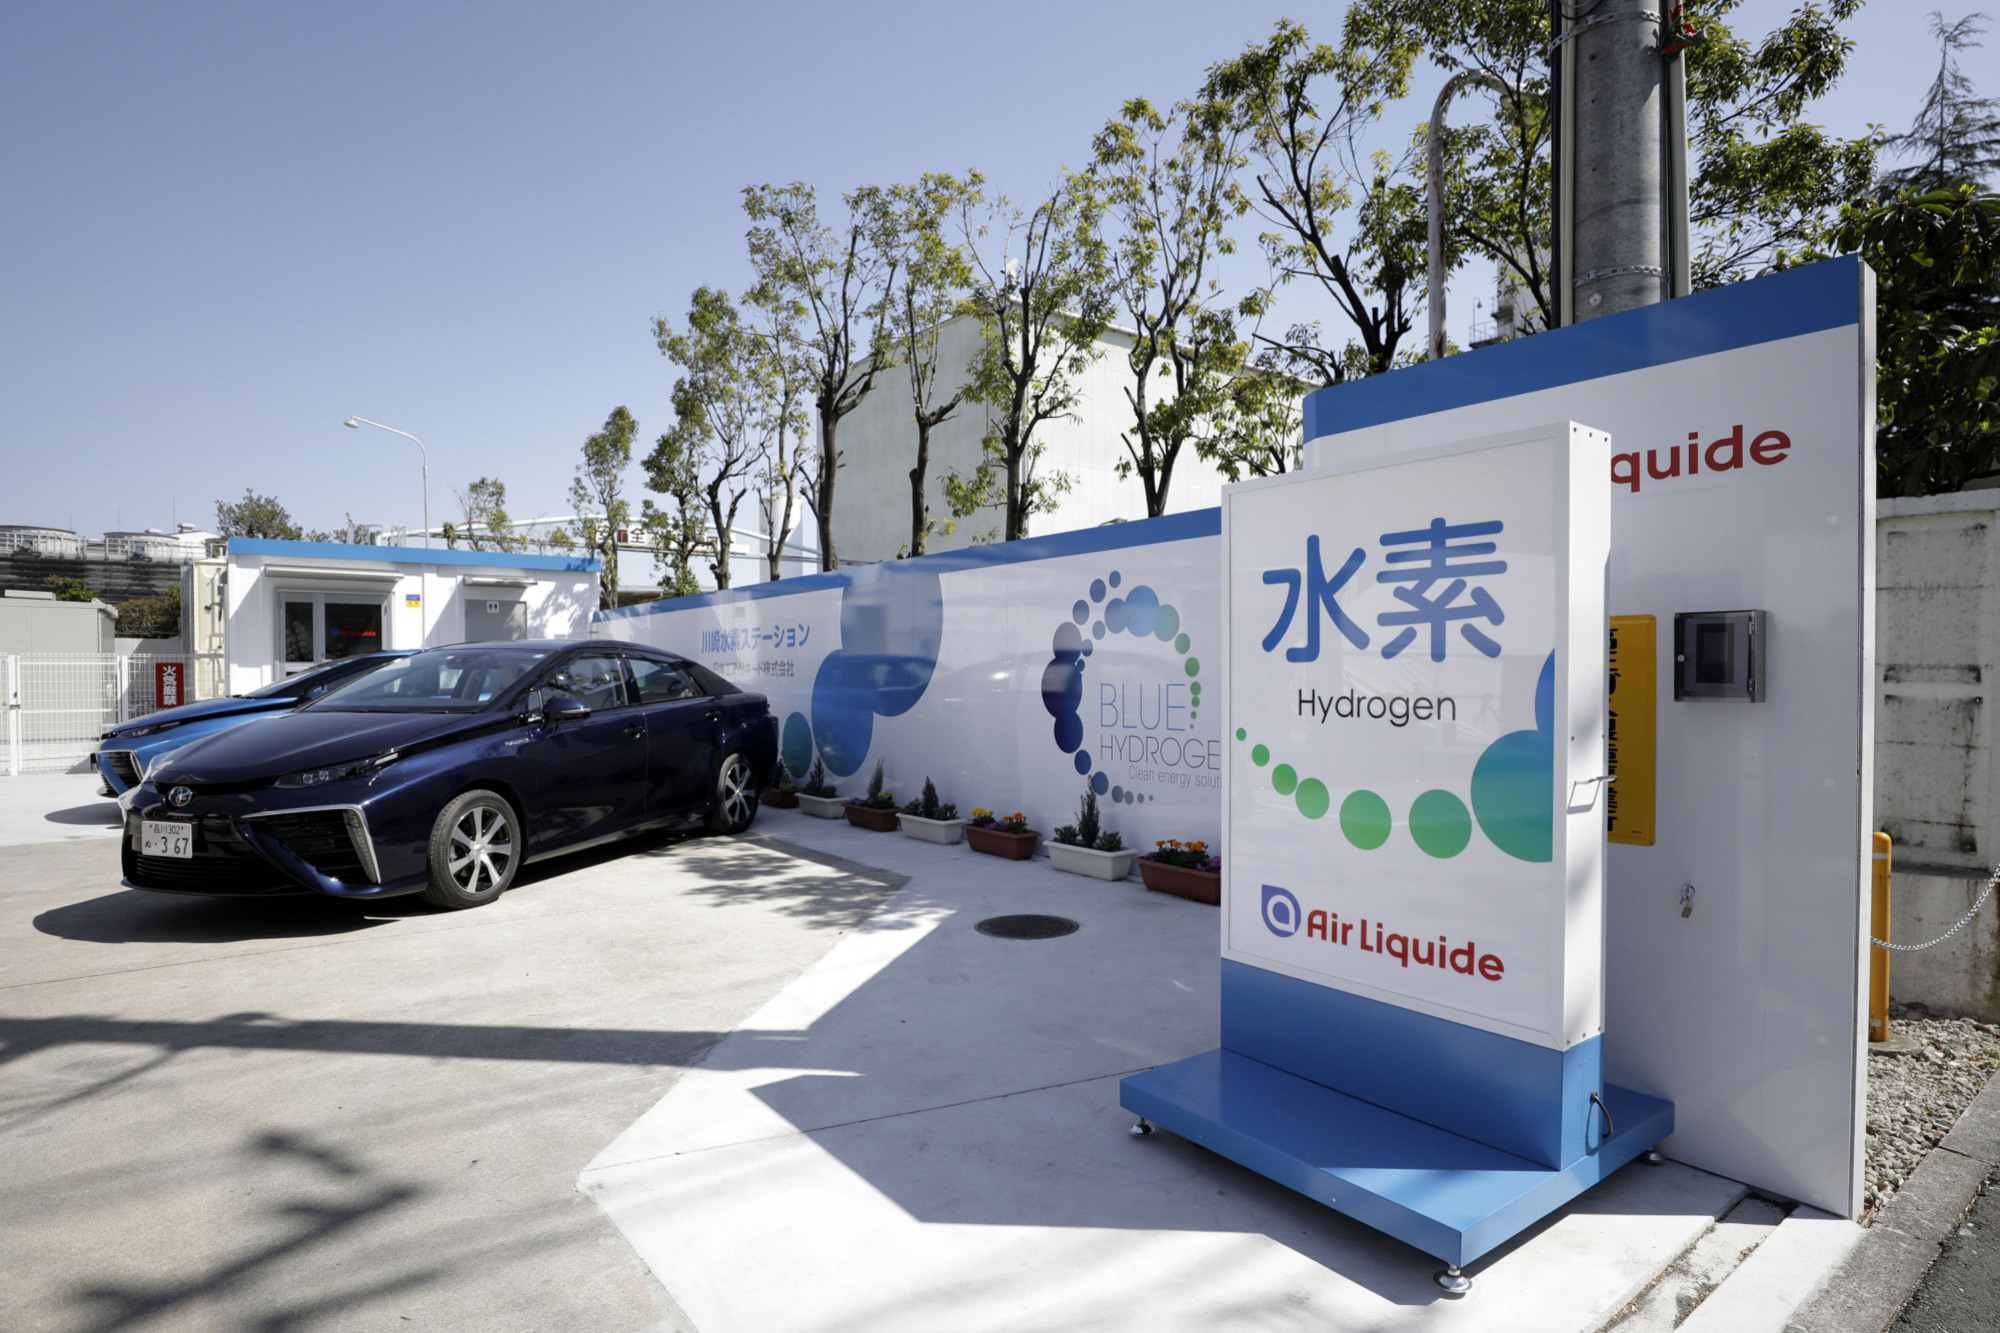 A Toyota Motor Corp. Mirai fuel cell vehicle sits parked at a hydrogen station in Kawasaki. Shipments of hydrogen fuel cells grew by more than 40 percent last year, according to a report from energy consultant E4tech. | BLOOMBERG